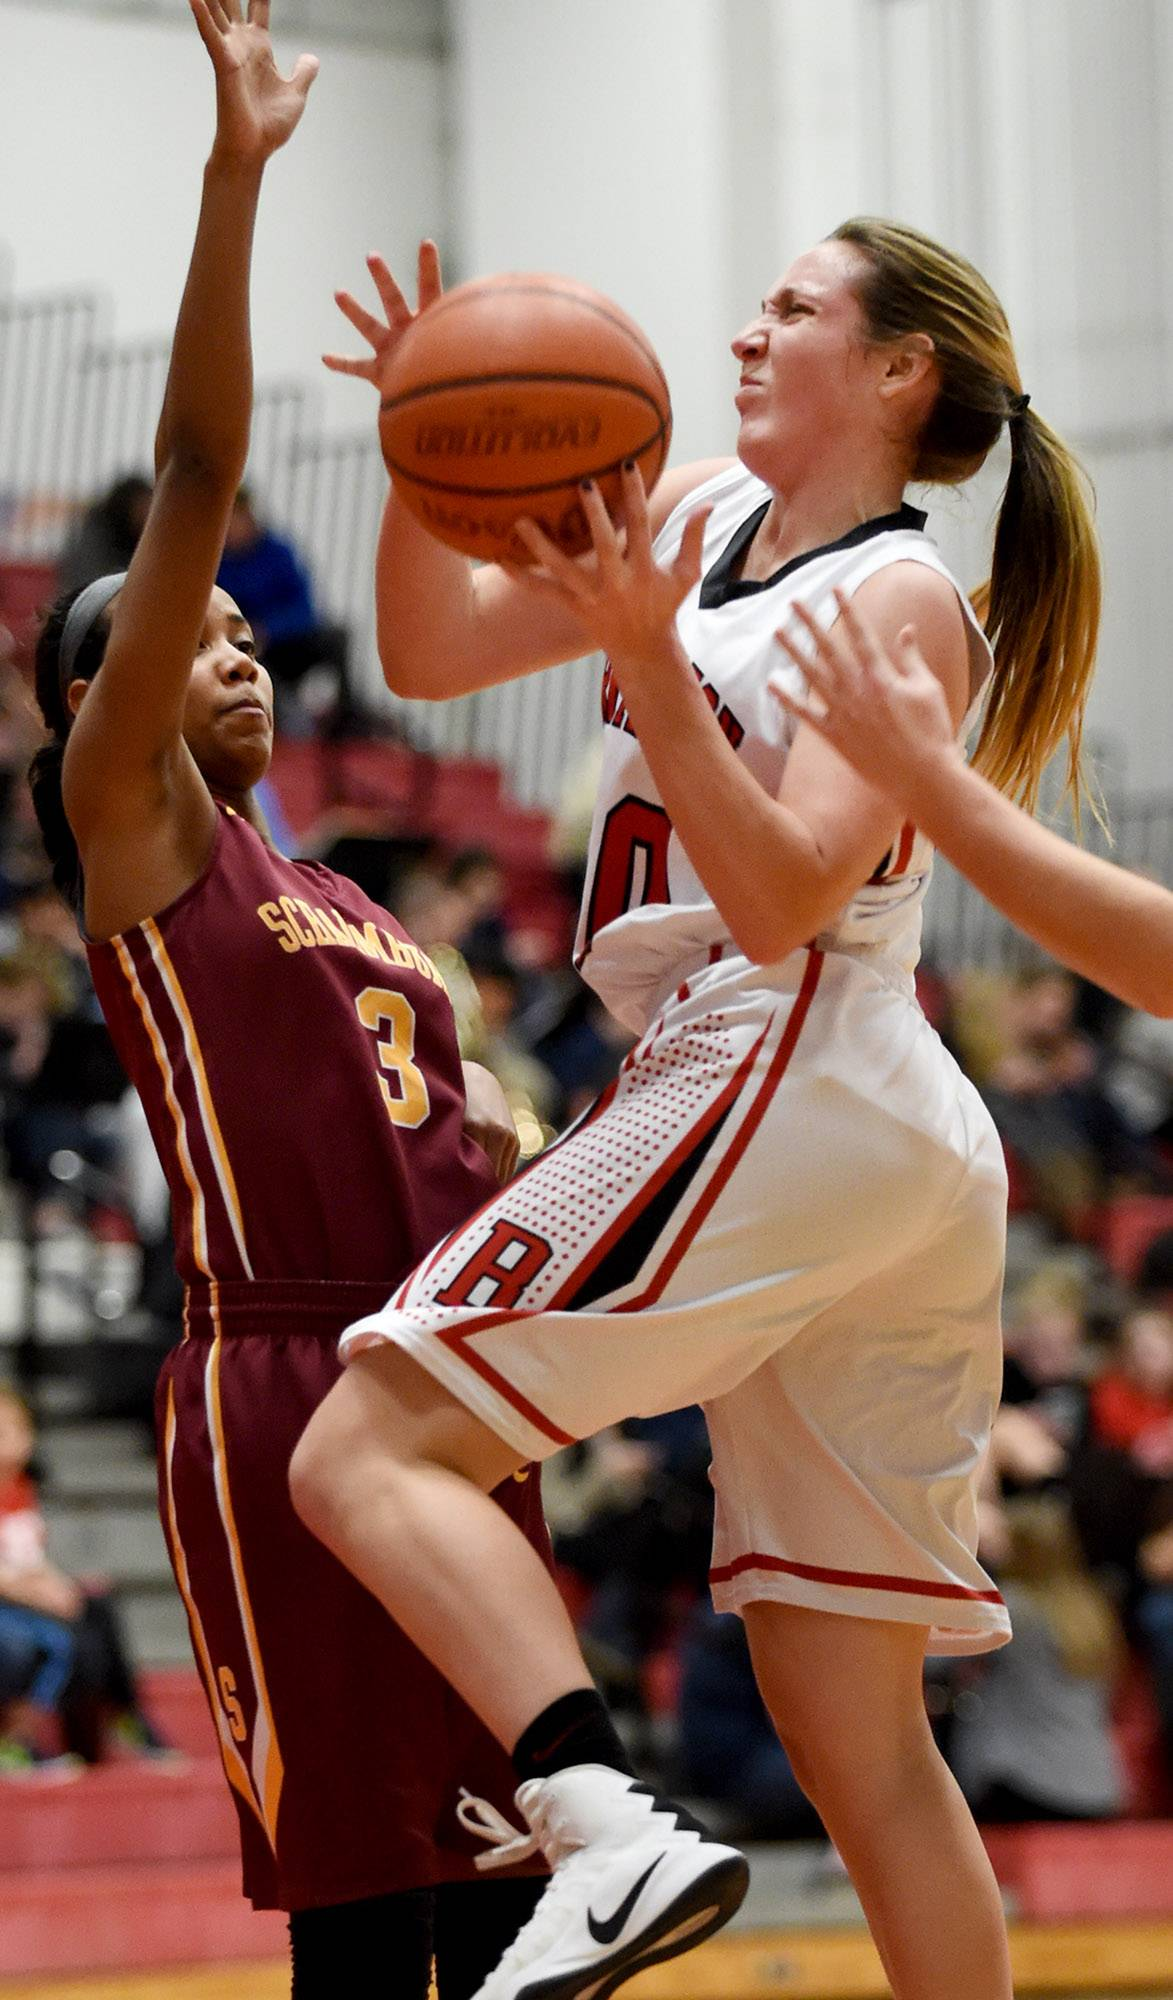 Schaumburg's Kayla Patterson (3) tries to defend as Barrington's Tori Meyer (20) on a driving layup Friday at Barrington.